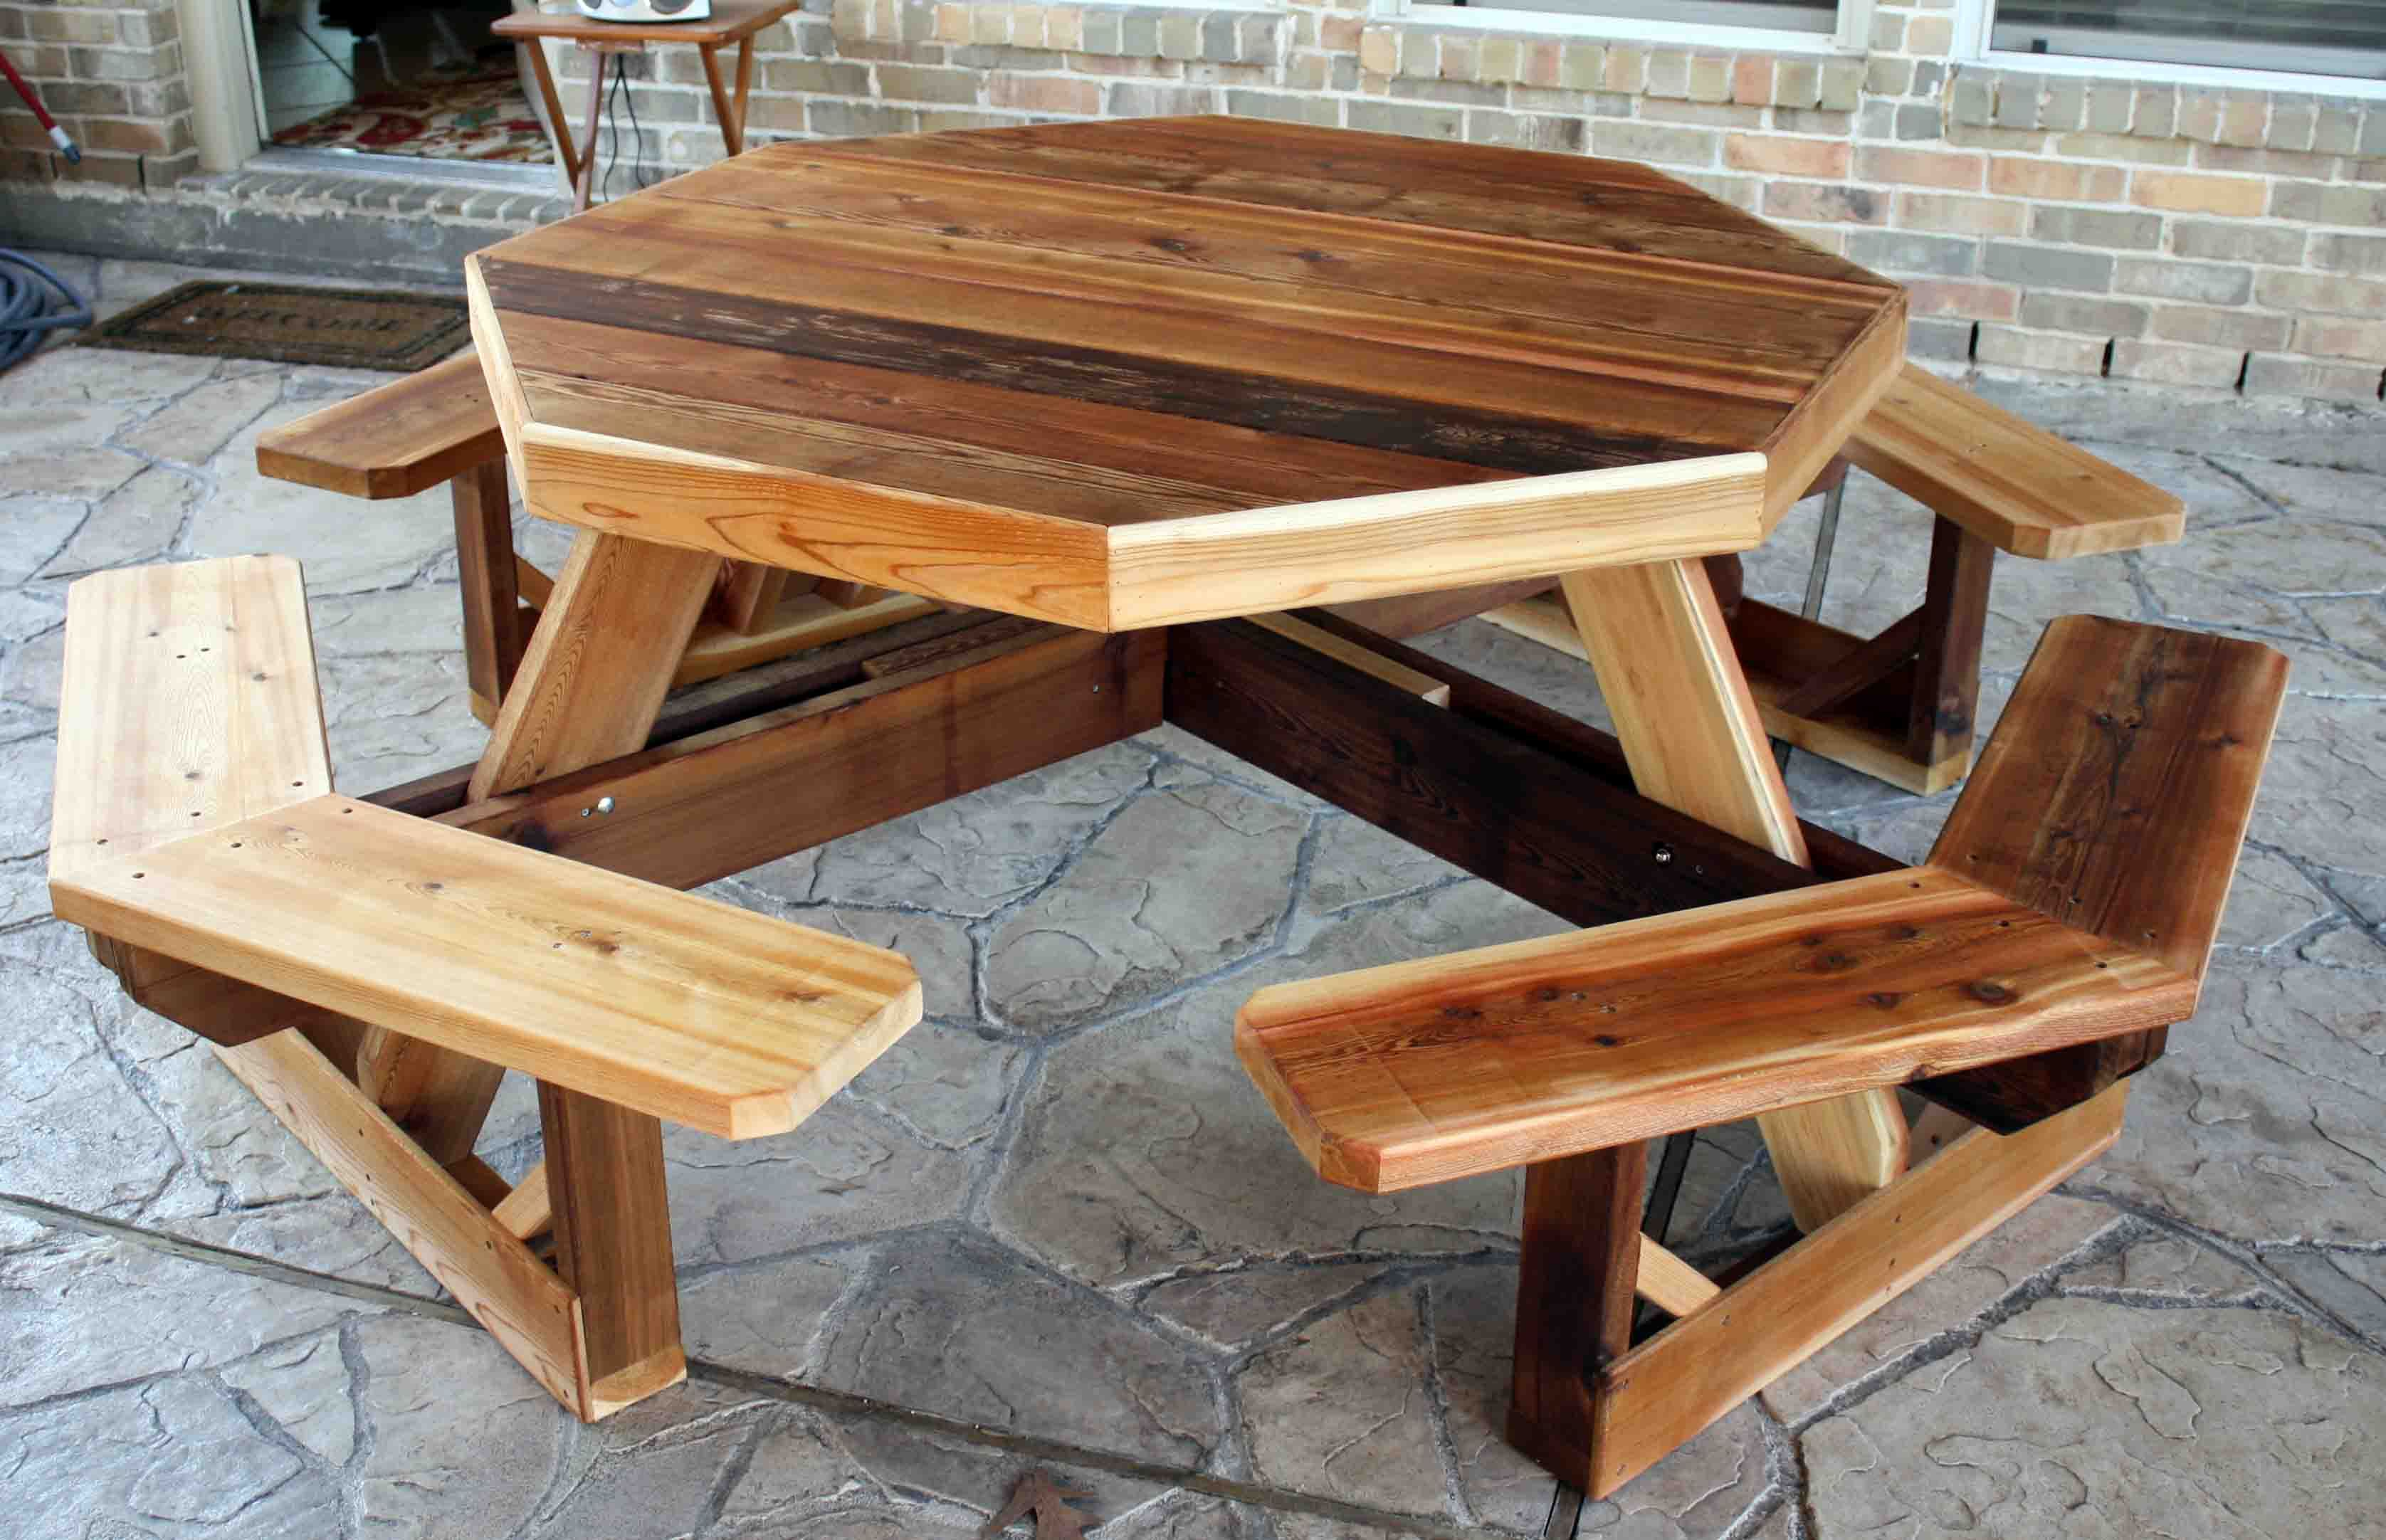 octagonal picnic table plans octagonal picnic table plans system furniture are ideal furniture pieces which. beautiful ideas. Home Design Ideas